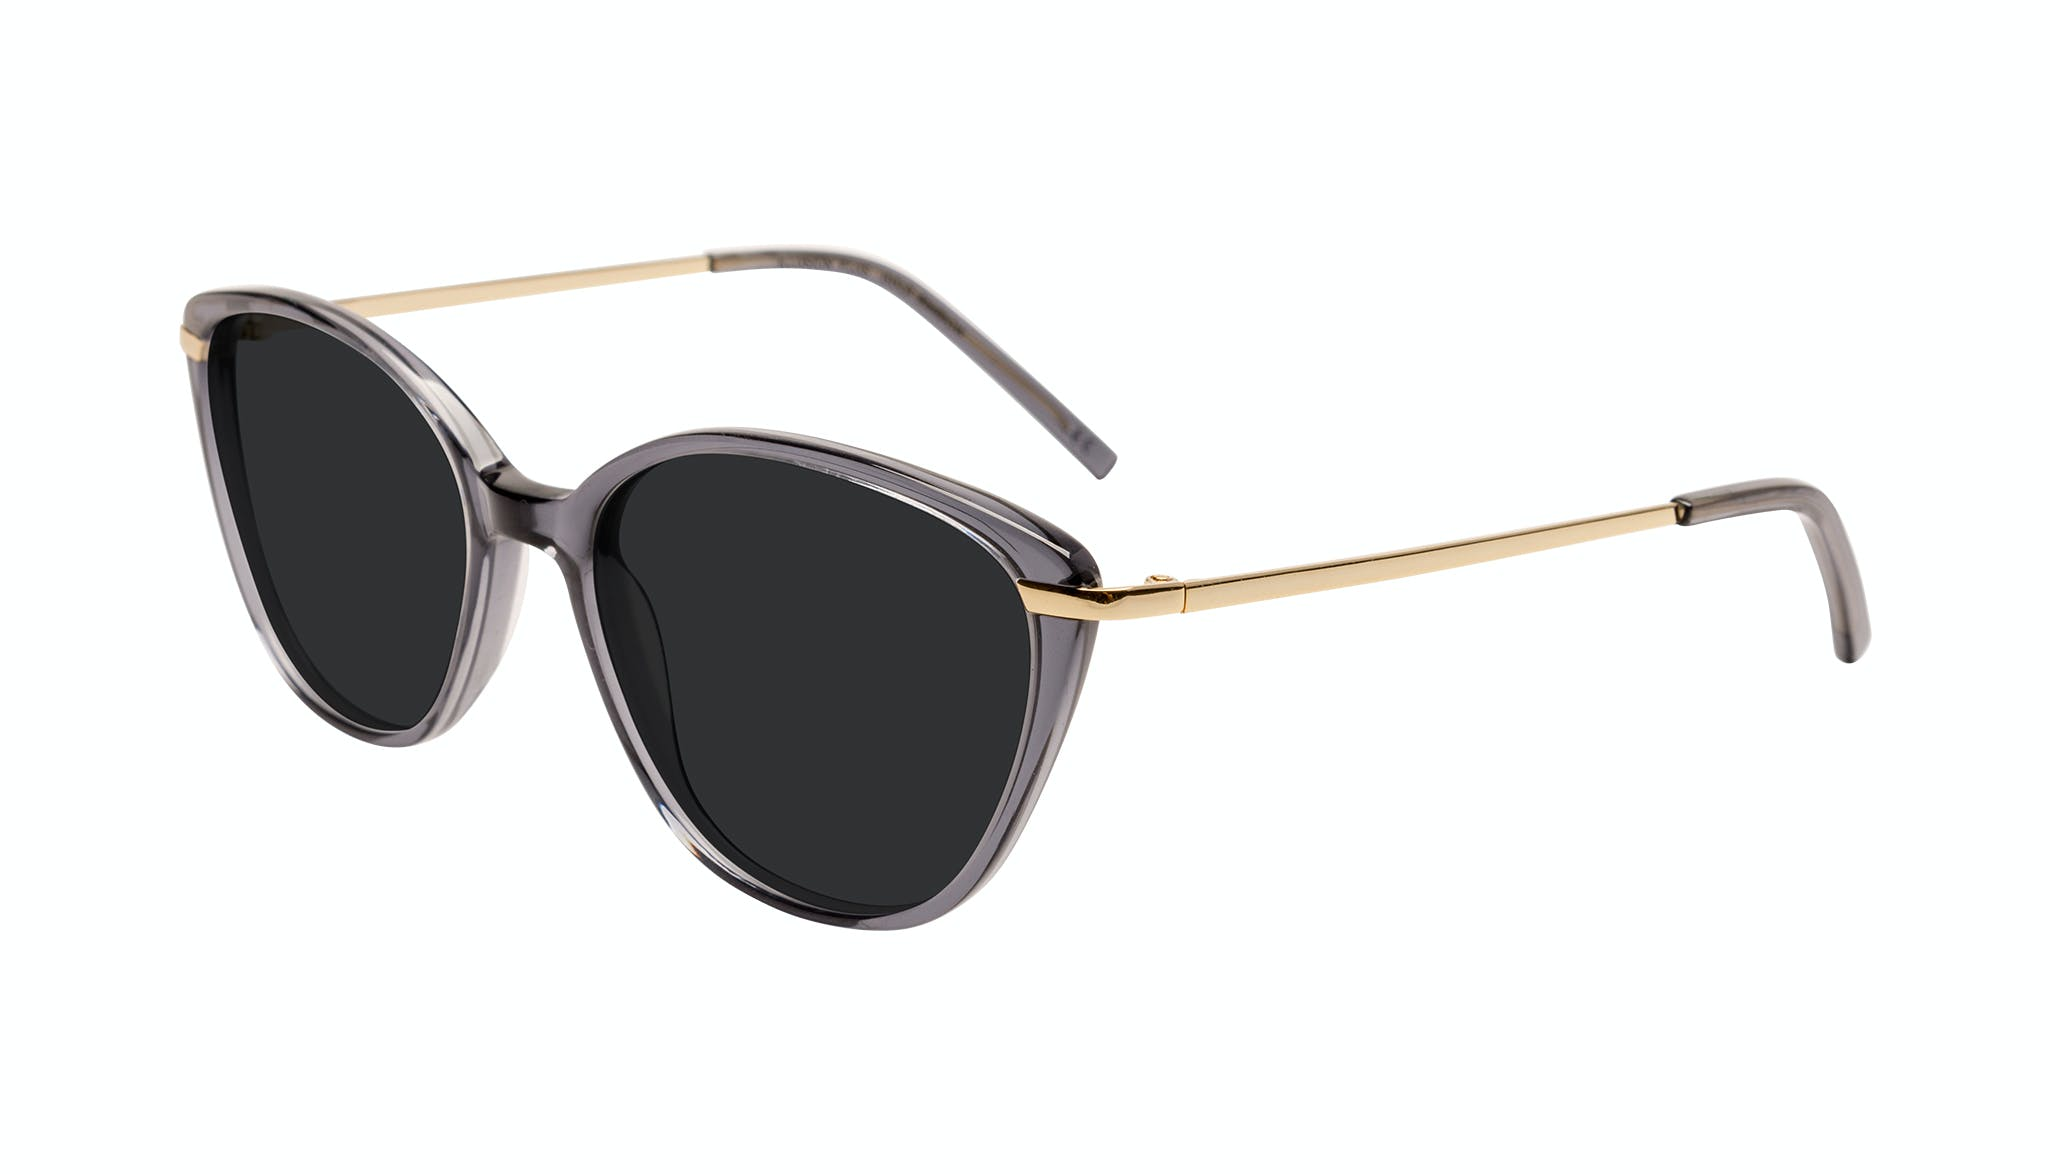 Affordable Fashion Glasses Cat Eye Sunglasses Women Illusion Plus Gold Shadow Tilt